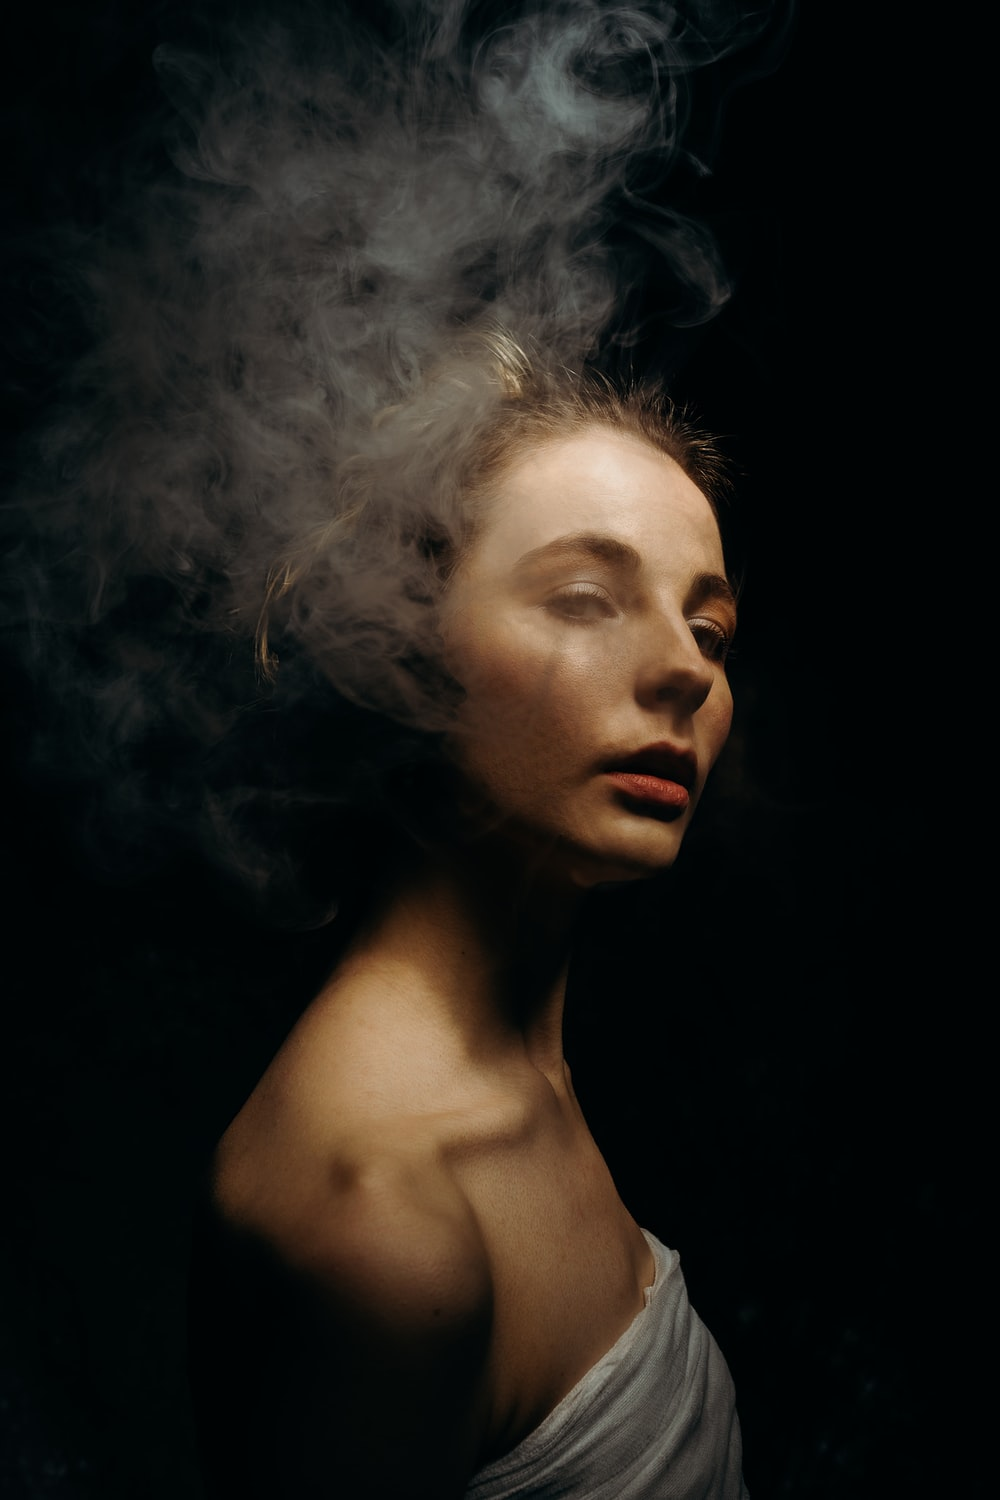 female model in a white top and smoke